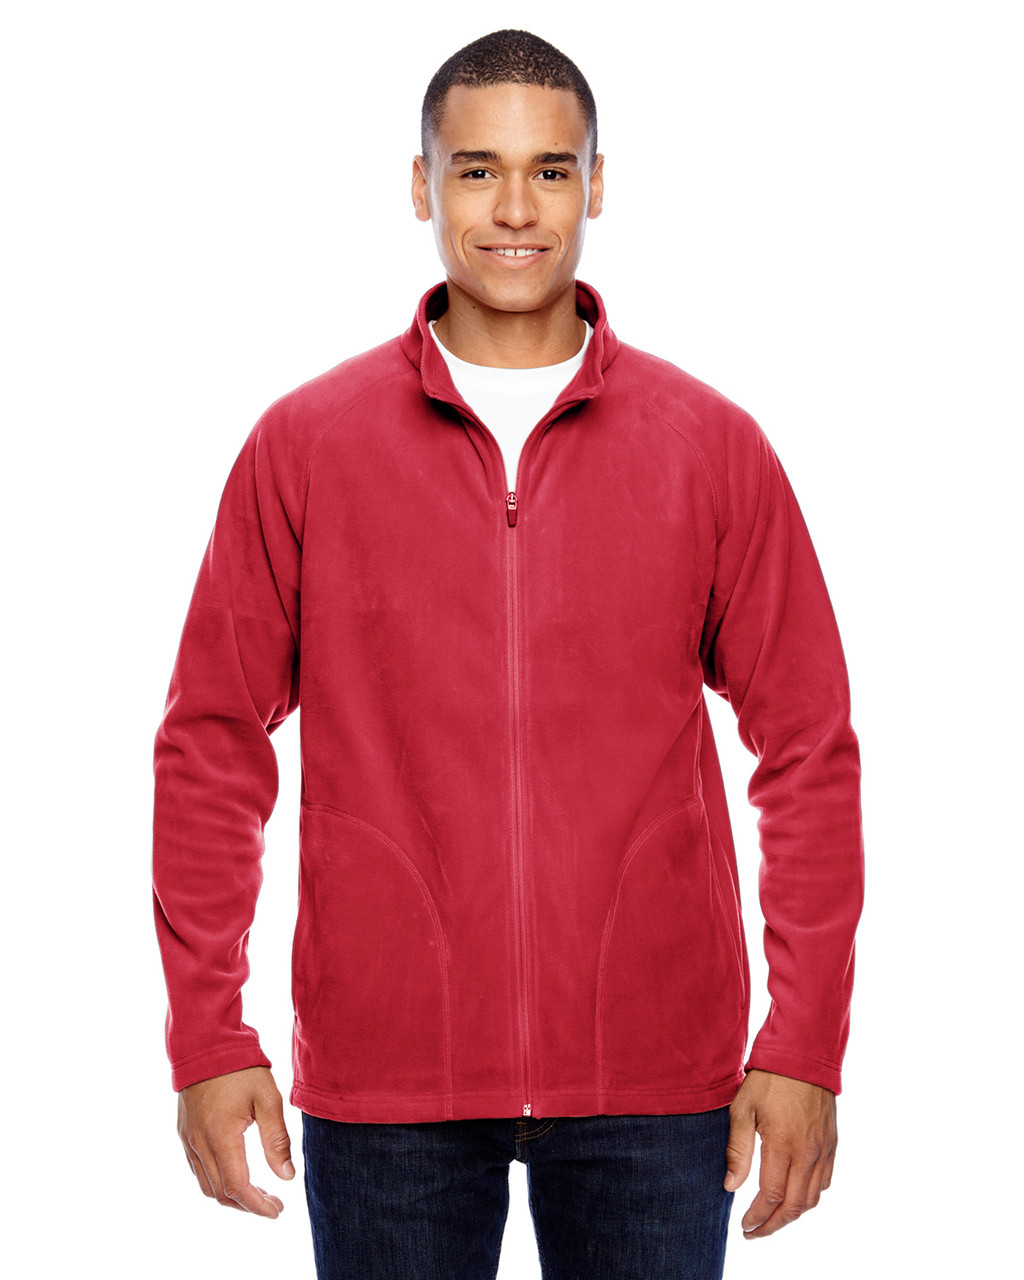 Red - TT90 Team 365 Men's Campus Microfleece Jacket | BlankClothing.ca